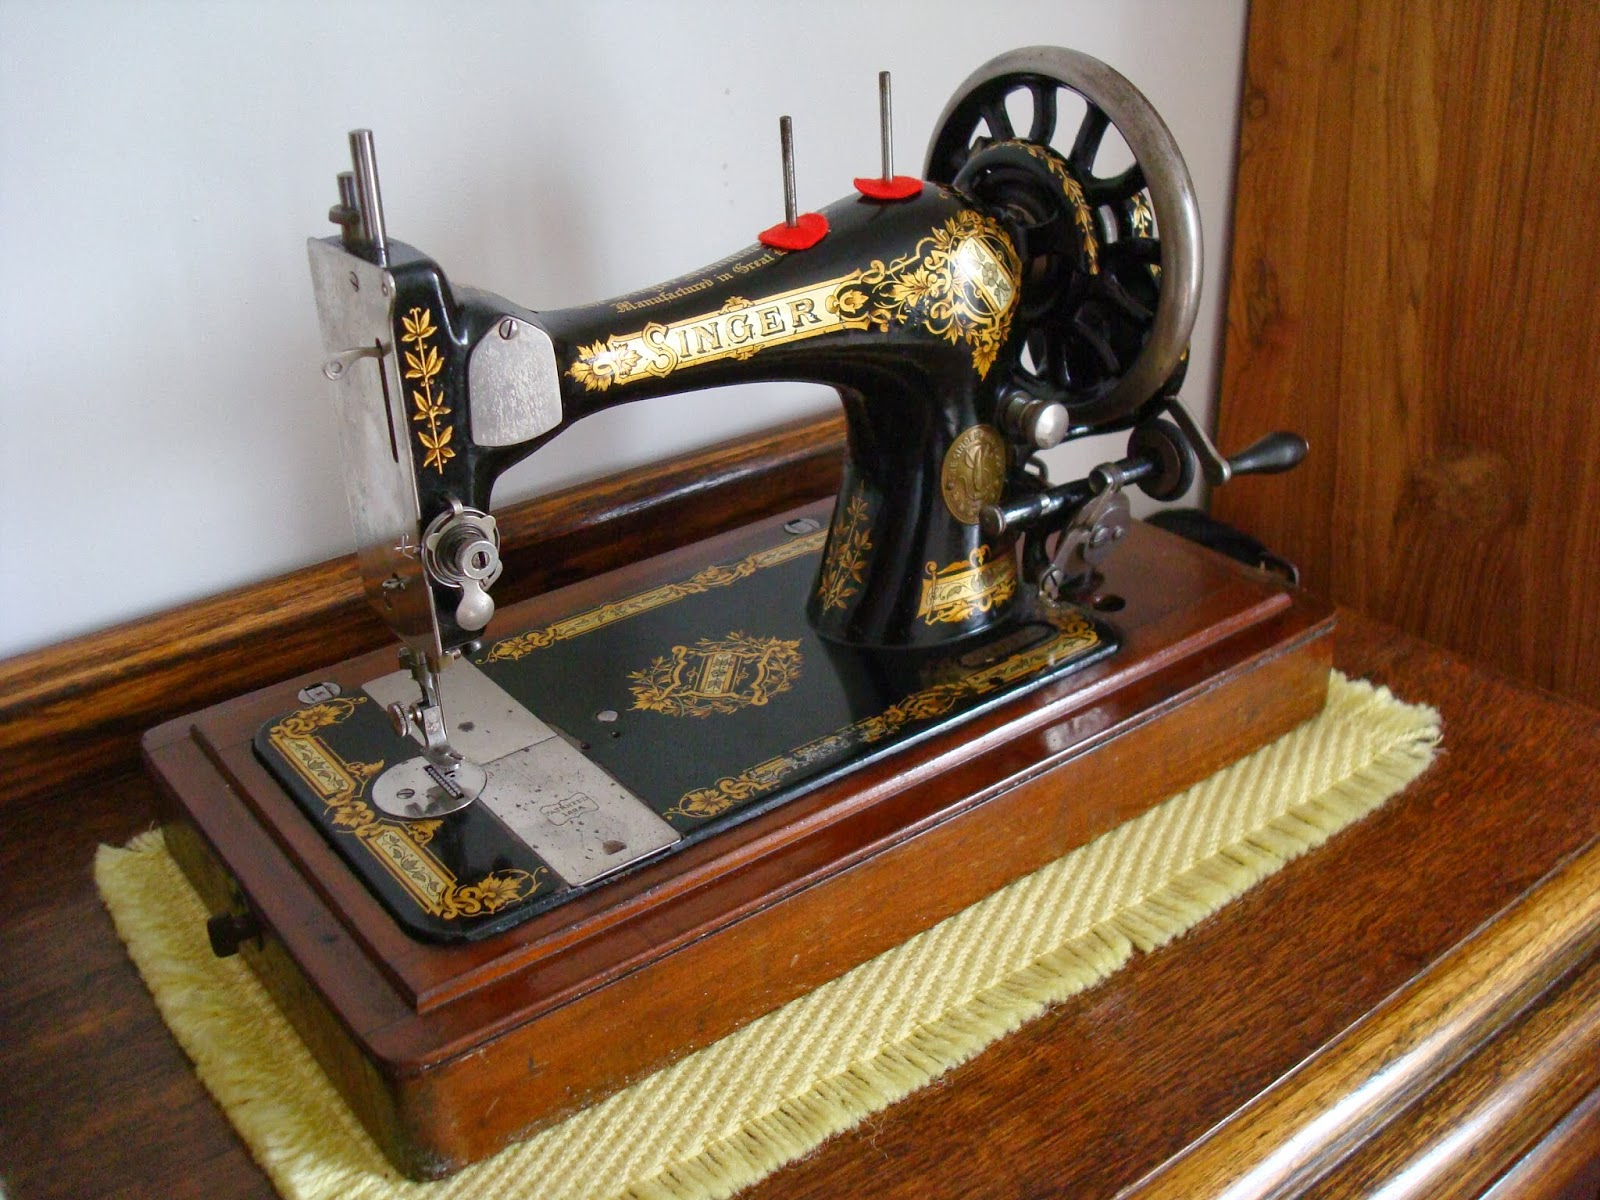 Singer 28 Sewing Machine